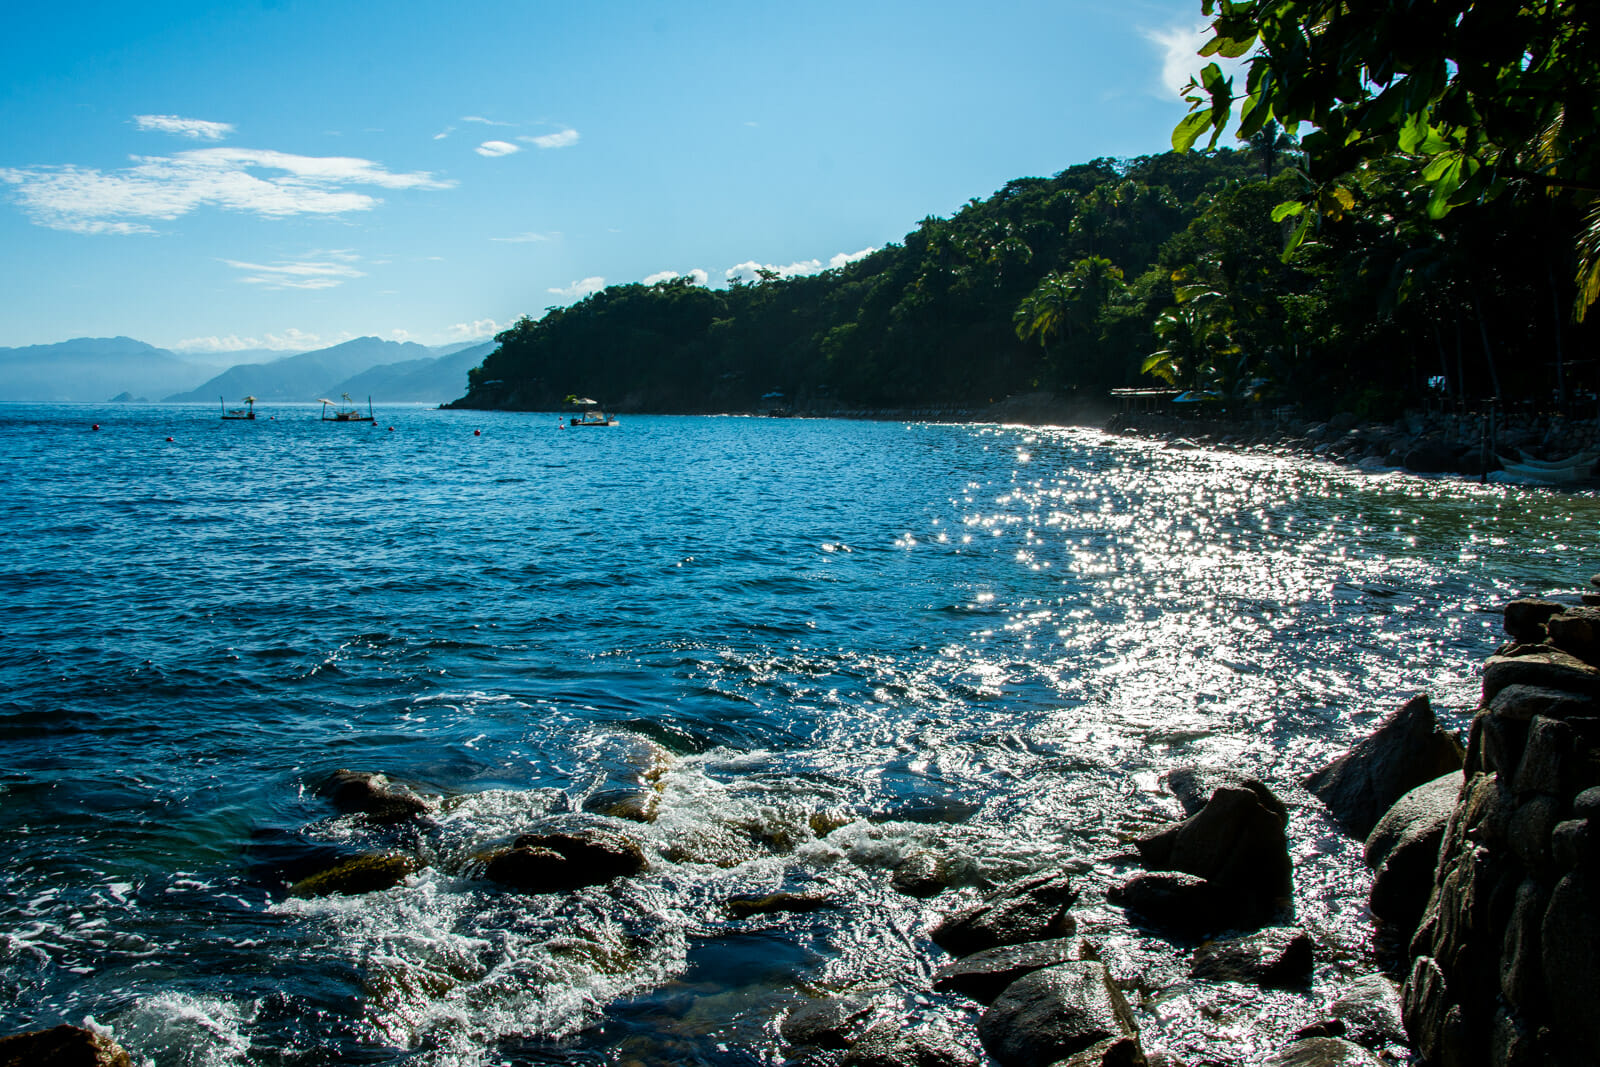 The Waters of Riviera Nayarit